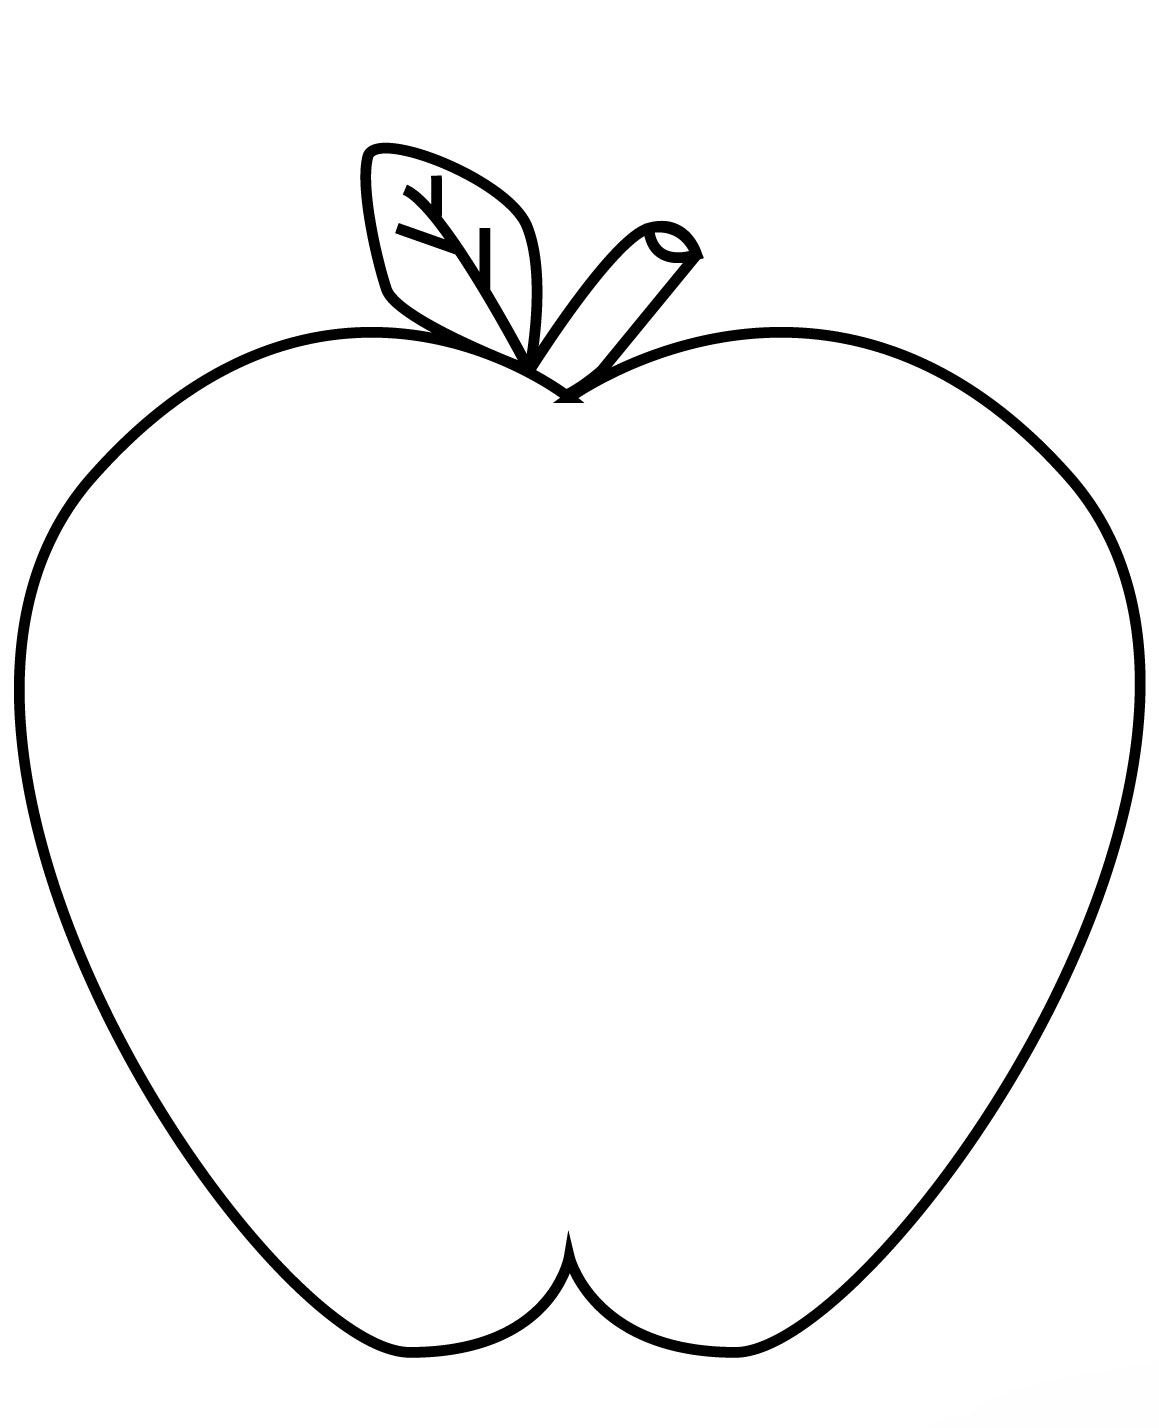 apple dumplin coloring page free printable coloring pages - HD 1159×1500